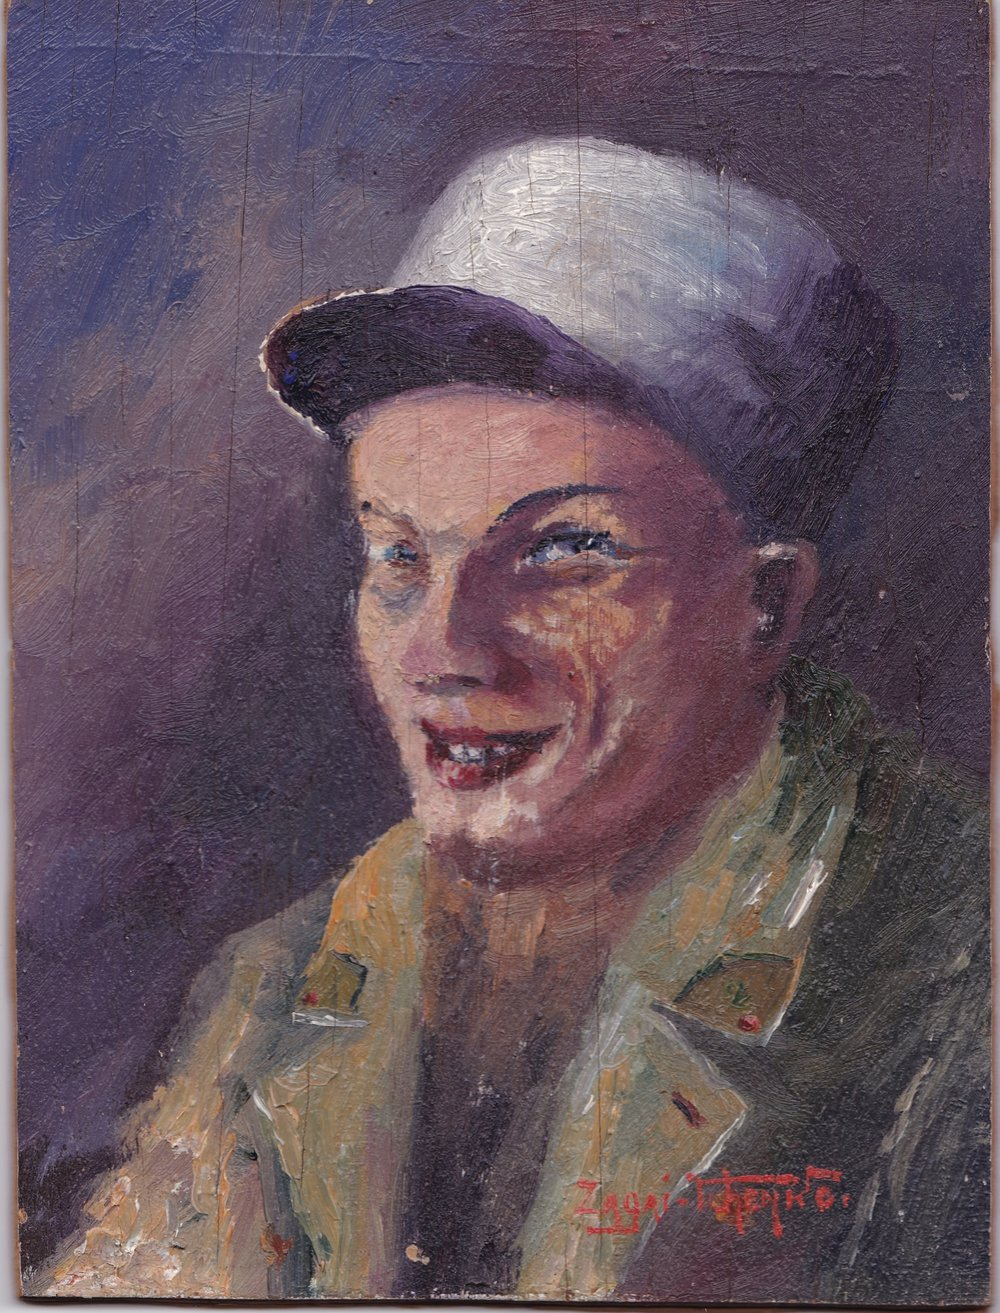 Portrait of Boy. Oil on board, n.d      This portrait shows Tuhn's initial attempts to paint. The piece was collected from his mother's collection, which was then donated to the War Memorial Museum in Berlin after her death. It can be compared with avant-garde movements in Europe at the time like Expressionism and Fauvism, with significant exponential figures such as Karl Schmidt-Rottluff andErnst Ludwig Kirchner.